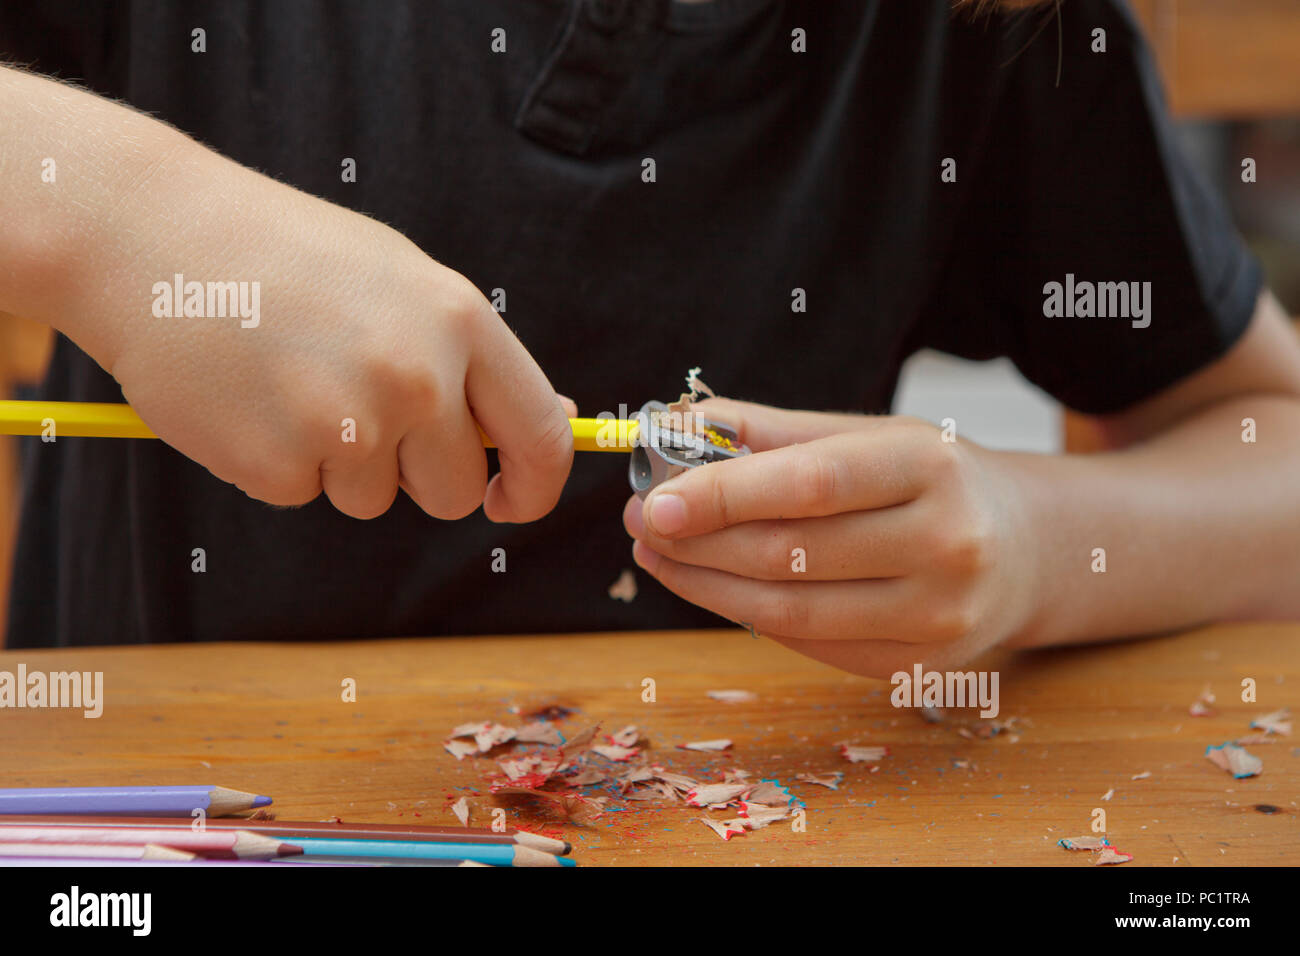 boy's hands tempering a pencil, close up - Stock Image